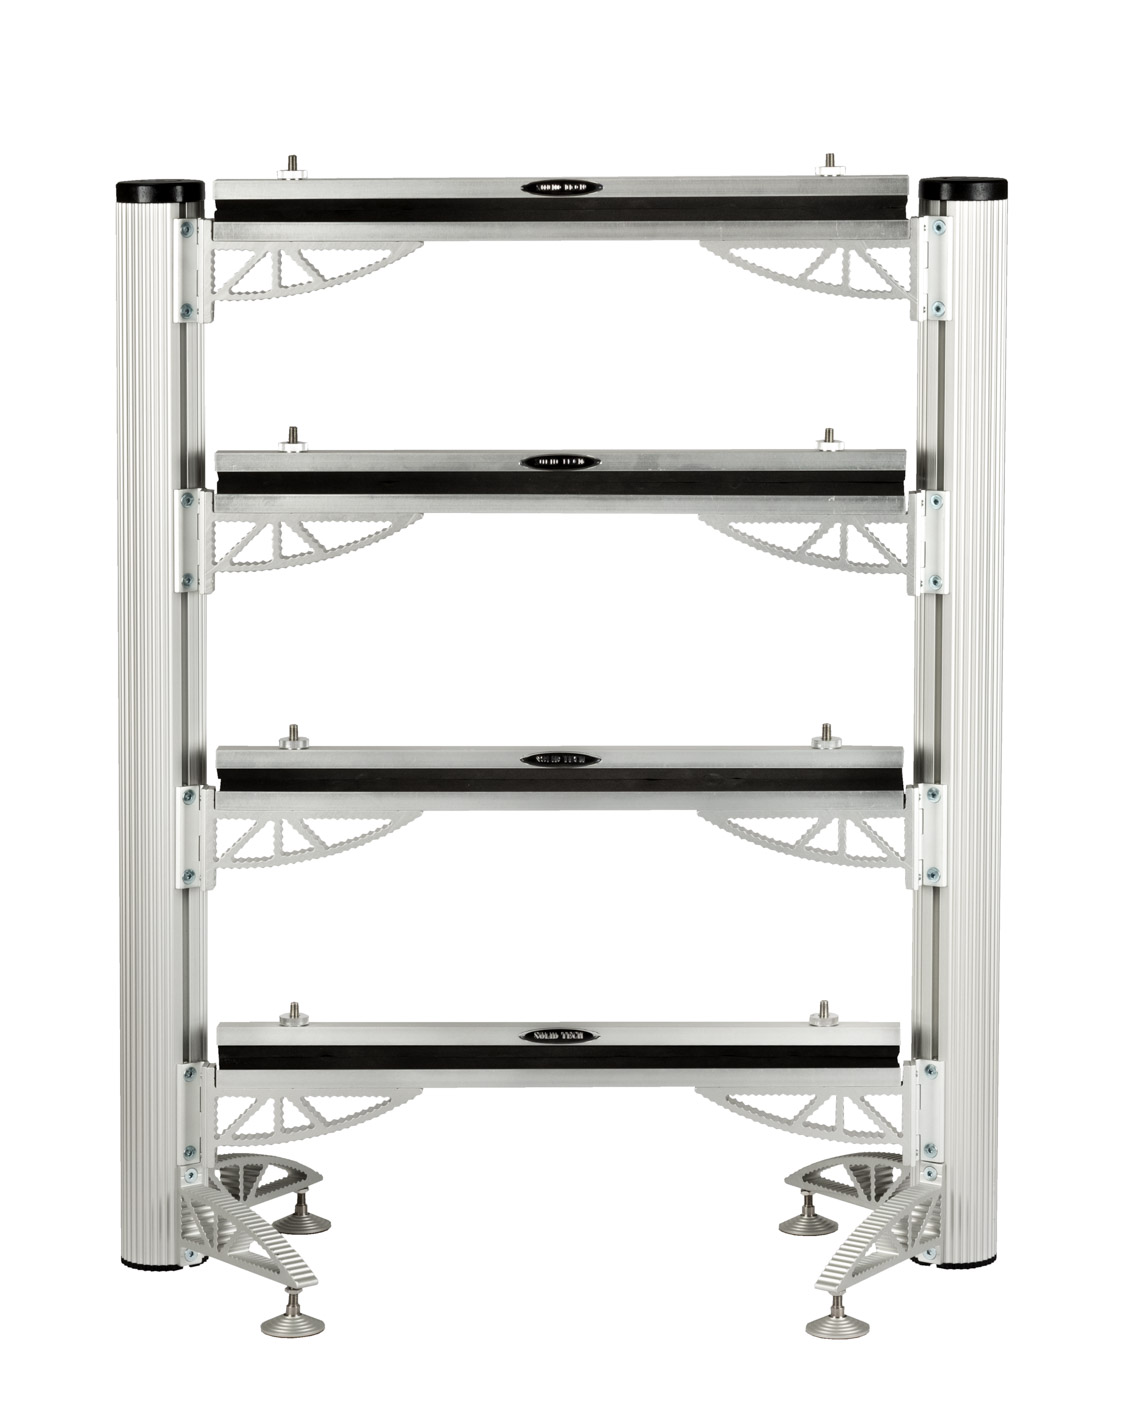 Cable Rack 875mm height Image